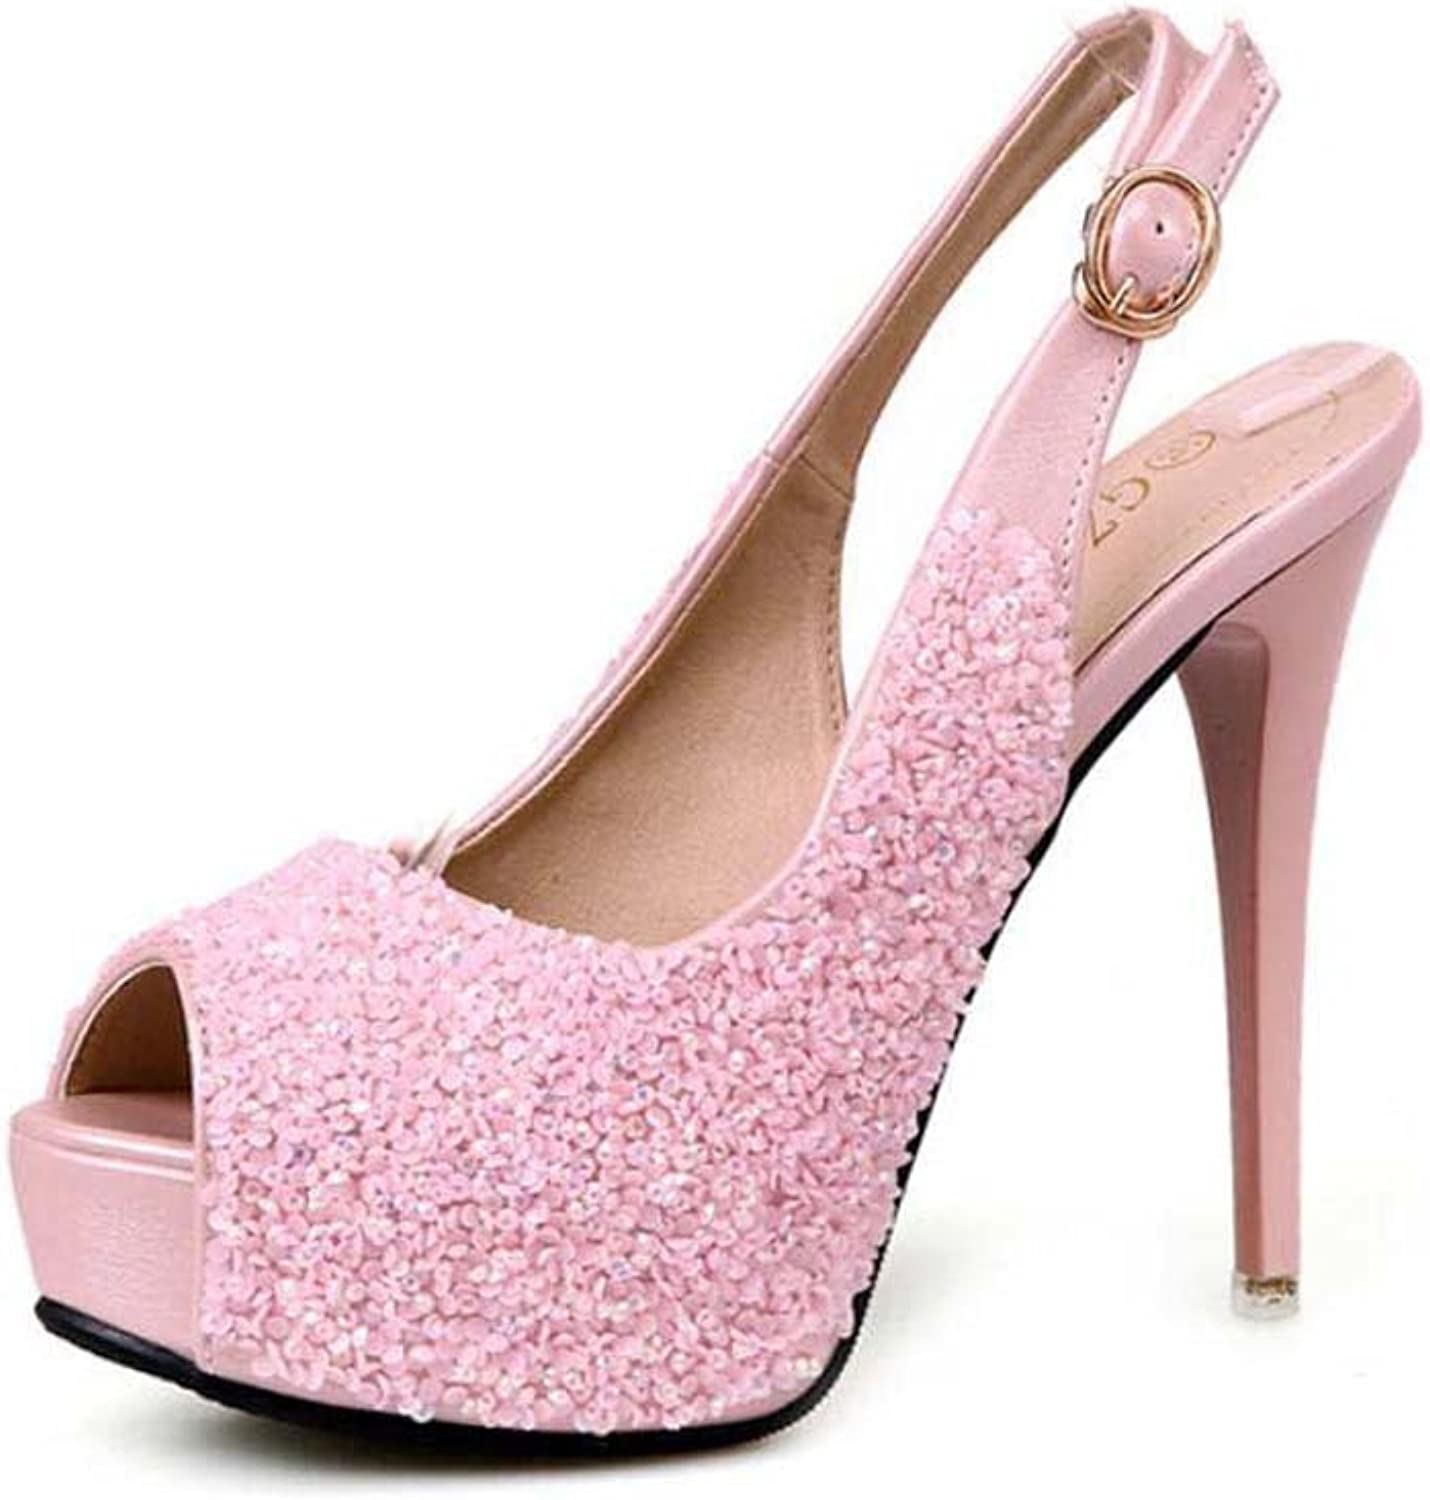 Pump 12cm Stiletto Slingbacks Sandals Rhinestone Sequins Wedding shoes Women Peep Toe Belt Buckle OL Court shoes Dress shoes Roma shoes EU Size 34-40